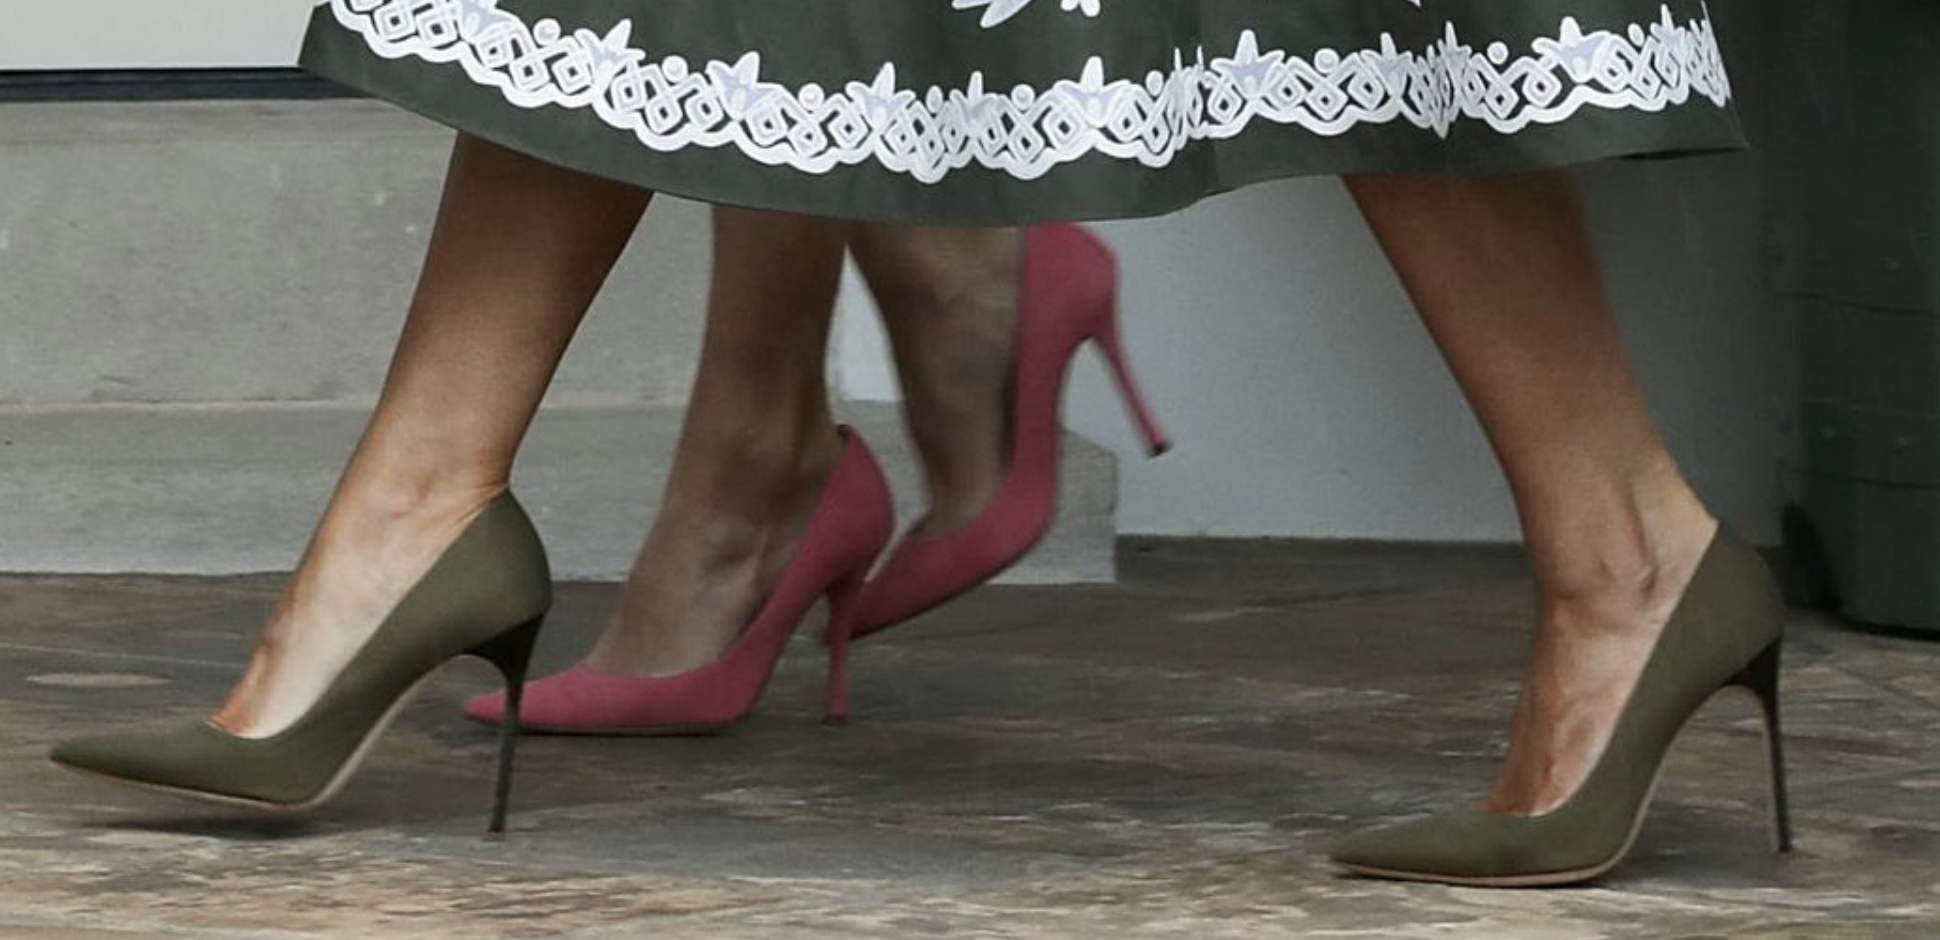 Eucch, I hate these shoes. What is Melania's trying to prove -- that she can almost walk on air? Getty Images, again.